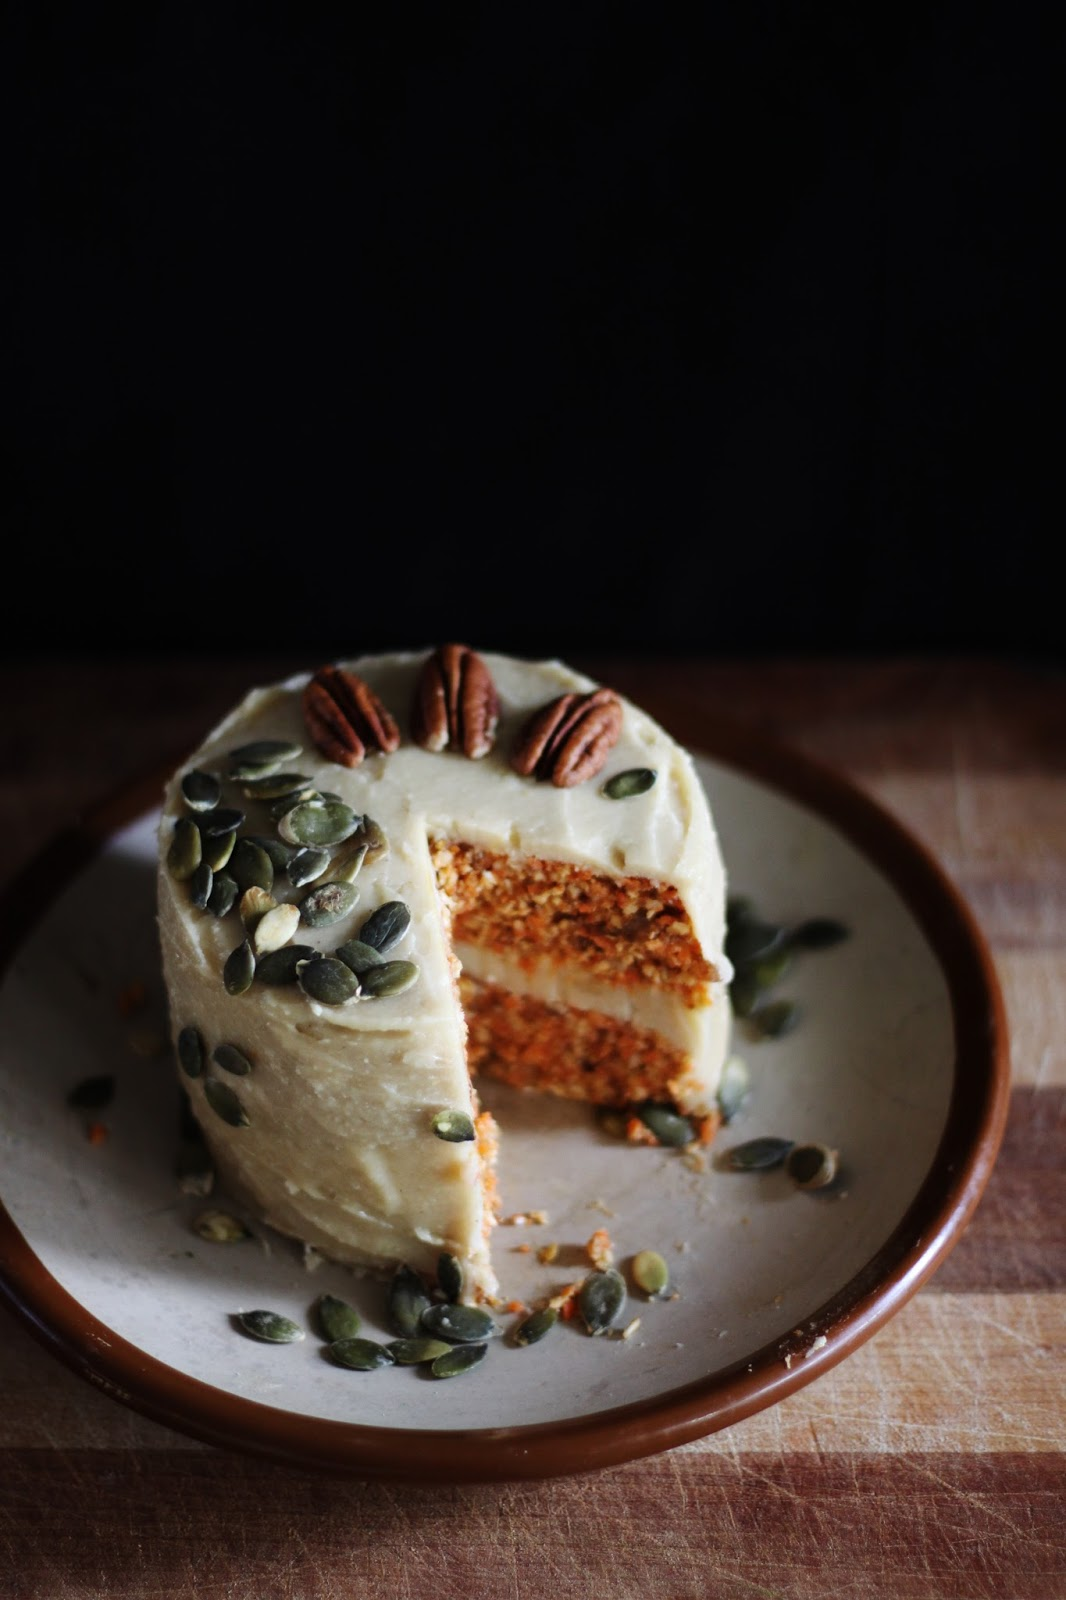 This Rawsome Vegan Life Carrot Cake